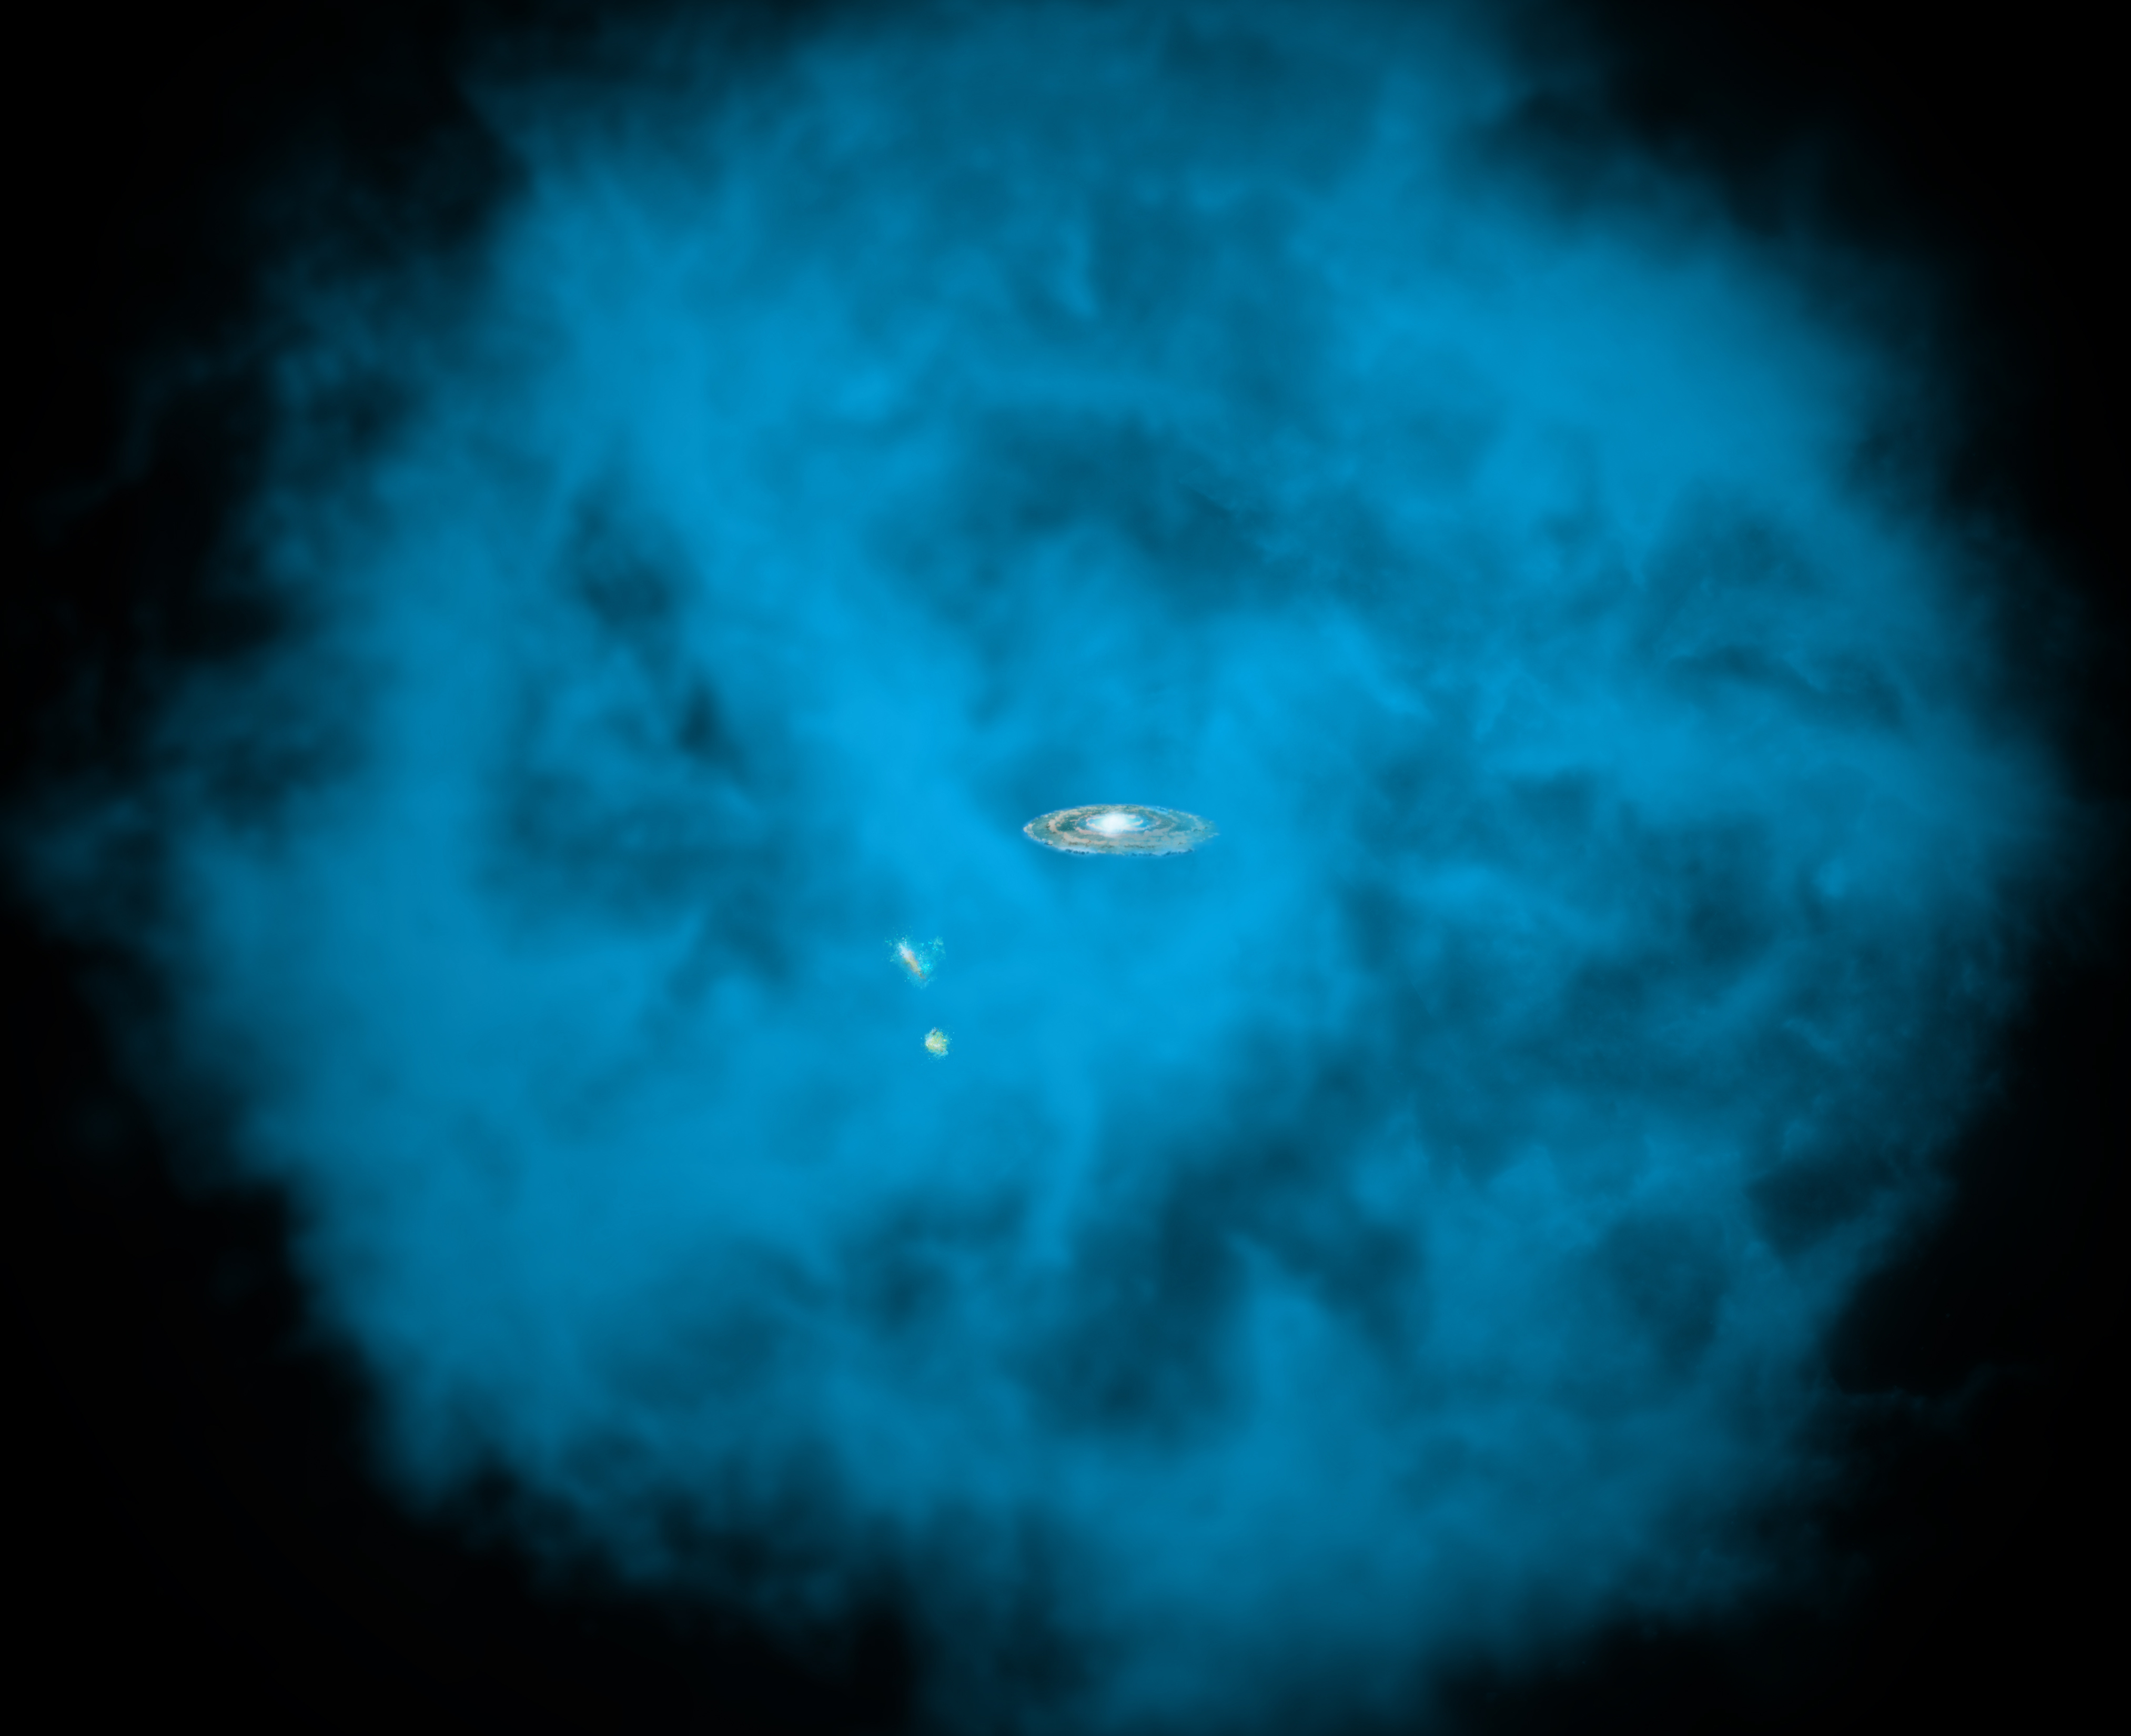 Our Milky Way galaxy and its small companions are surrounded by a giant halo of million-degree gas (seen in blue in this artists' rendition) that is only visible to X-ray telescopes in space. University of Michigan astronomers discovered that this massive hot halo spins in the same direction as the Milky Way disk and at a comparable speed.